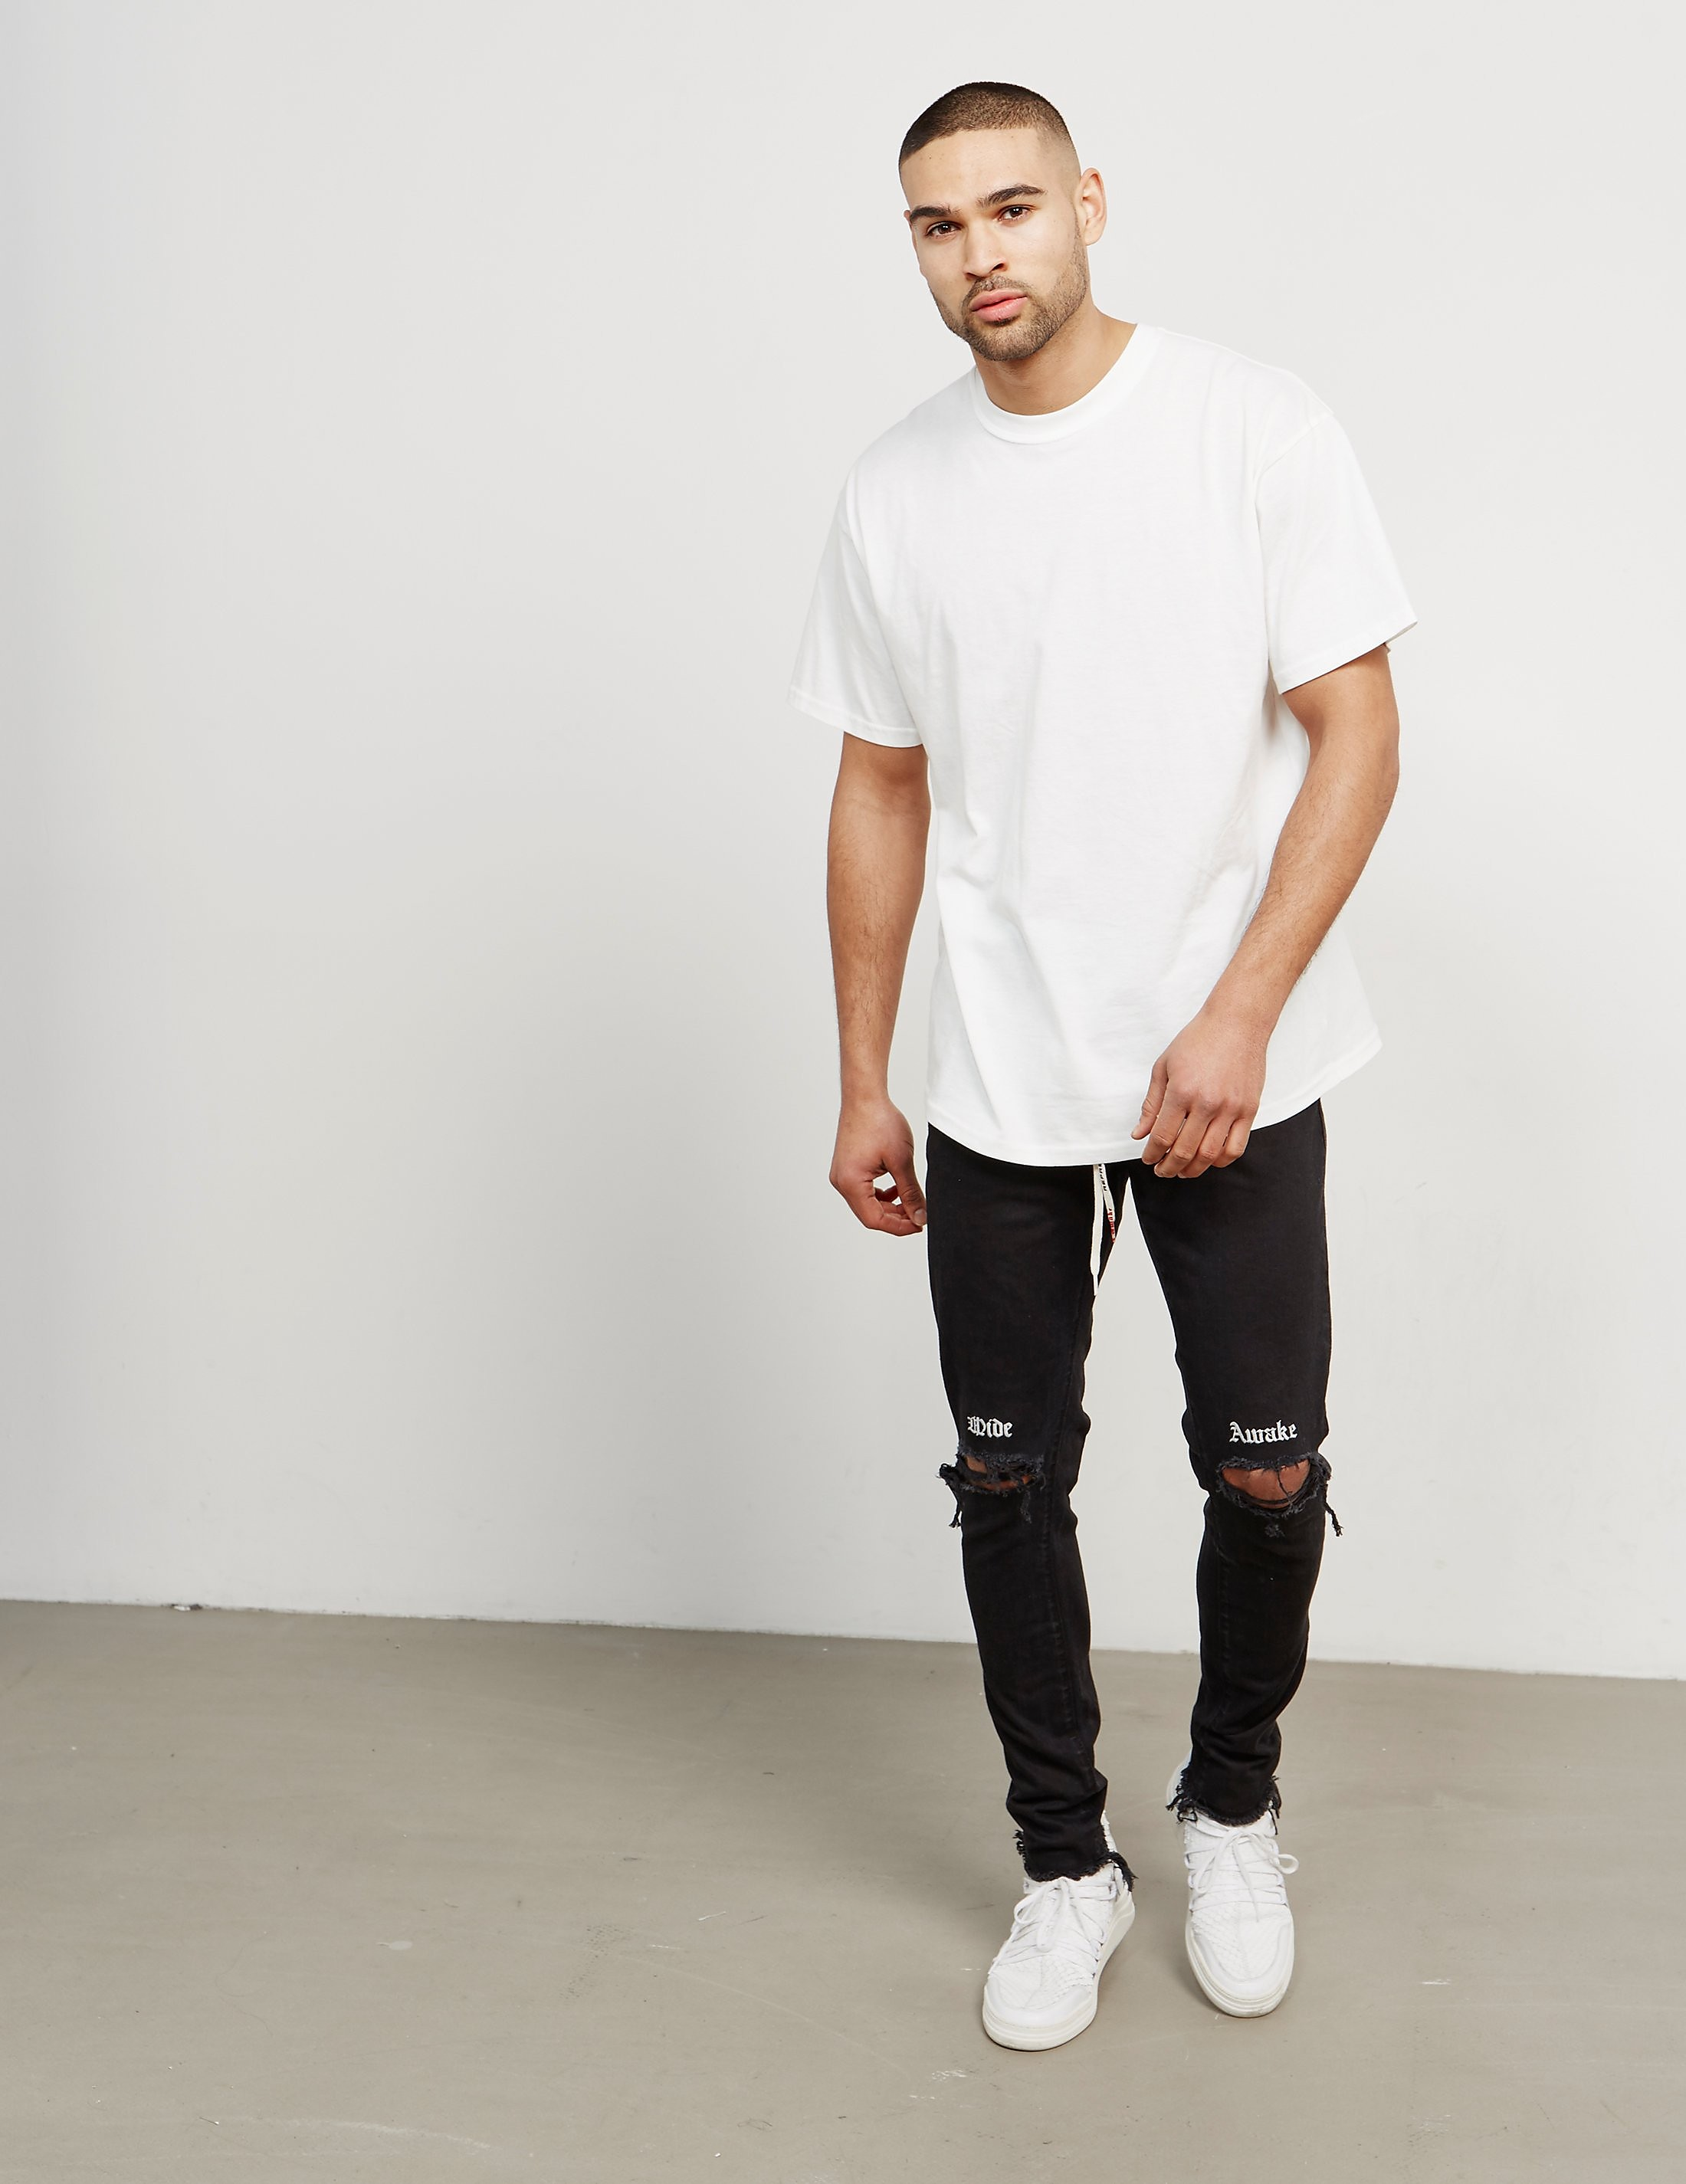 Represent Wide Awake Destroyed Jeans - Online Exclusive